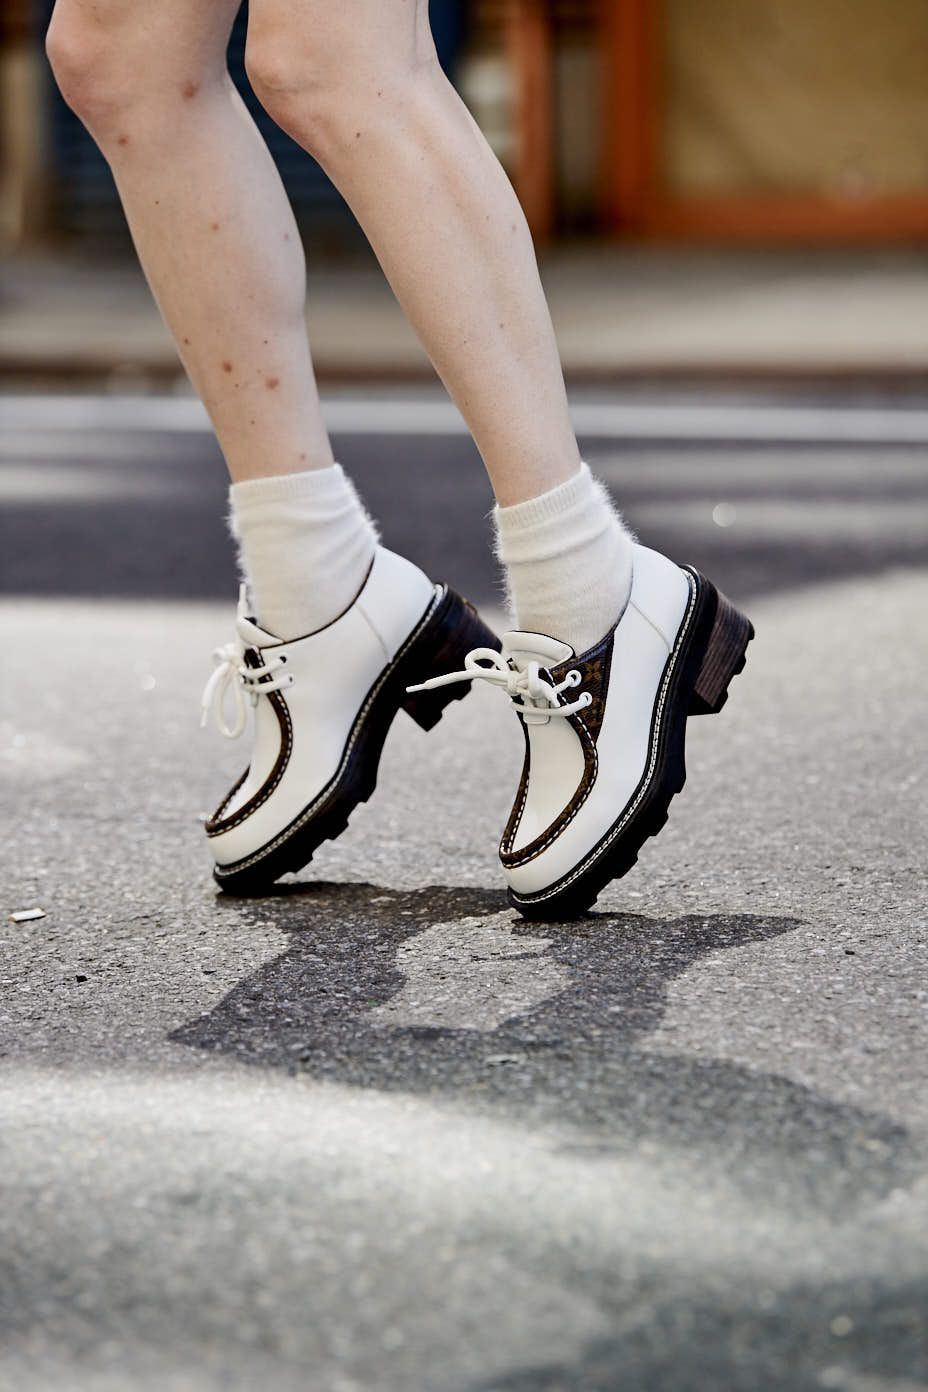 Creeper Sneakers Are Fall's Most Covetable Shoe